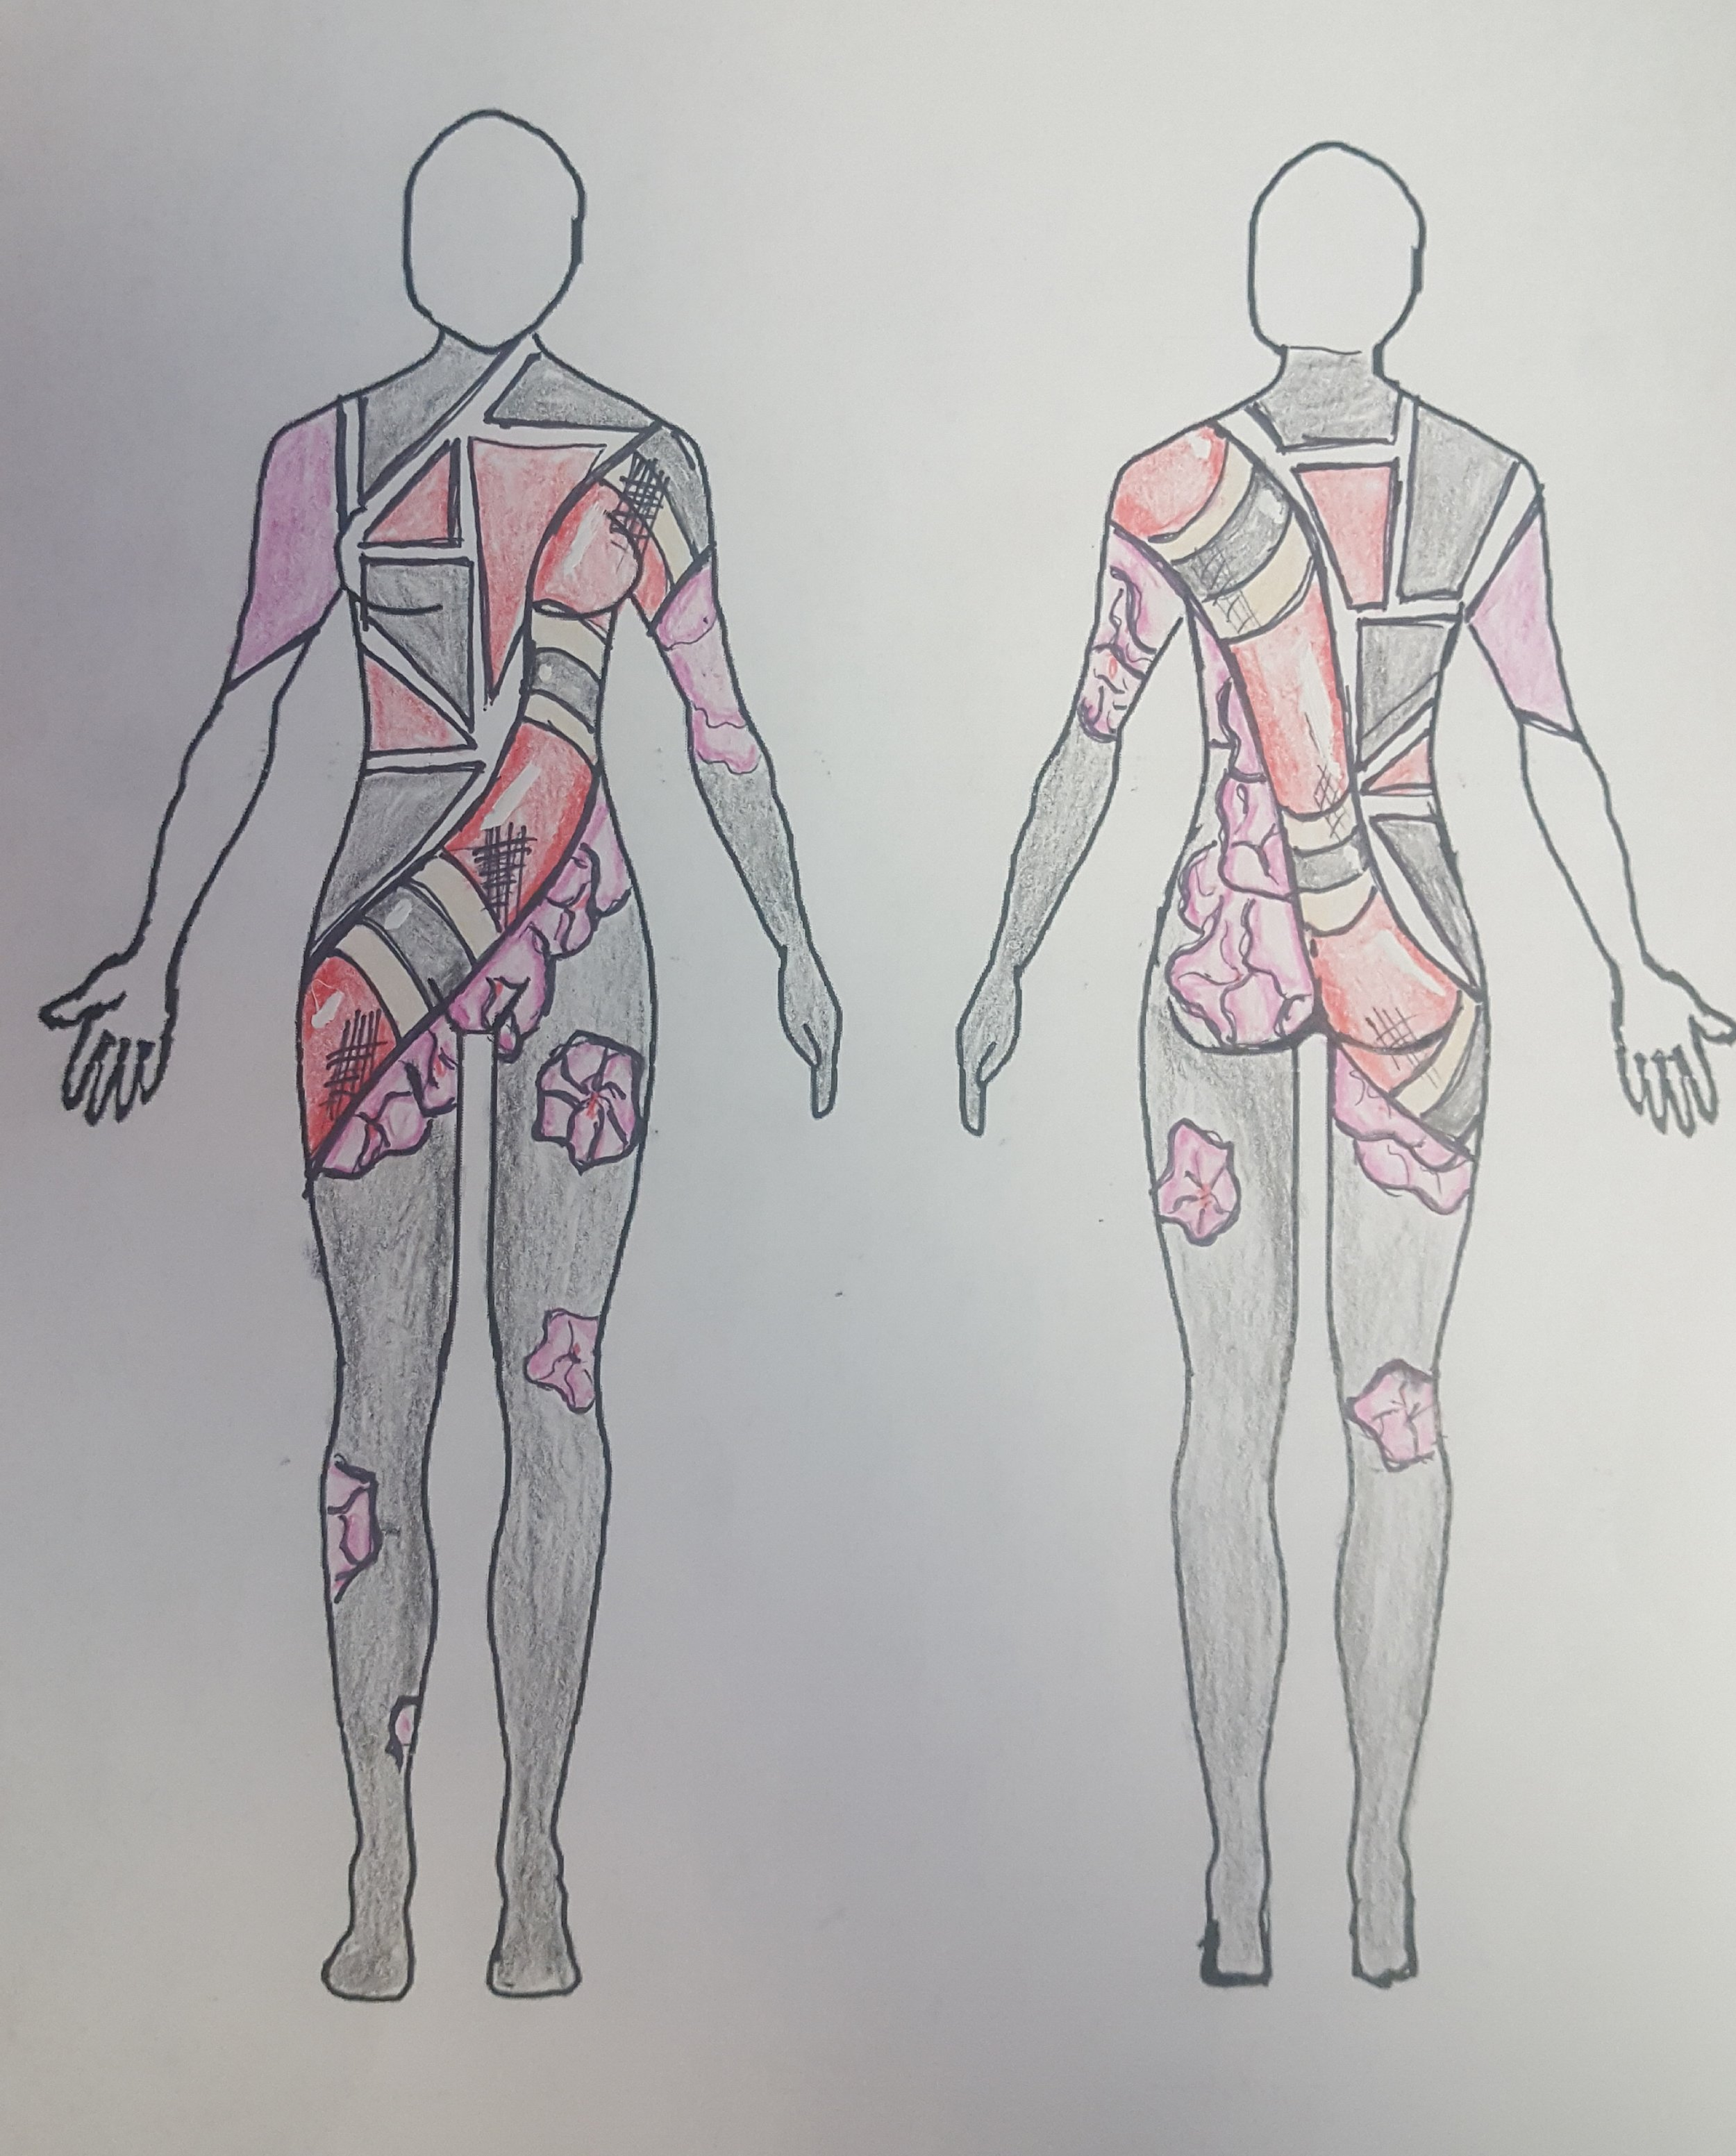 Rough sketch of body paints